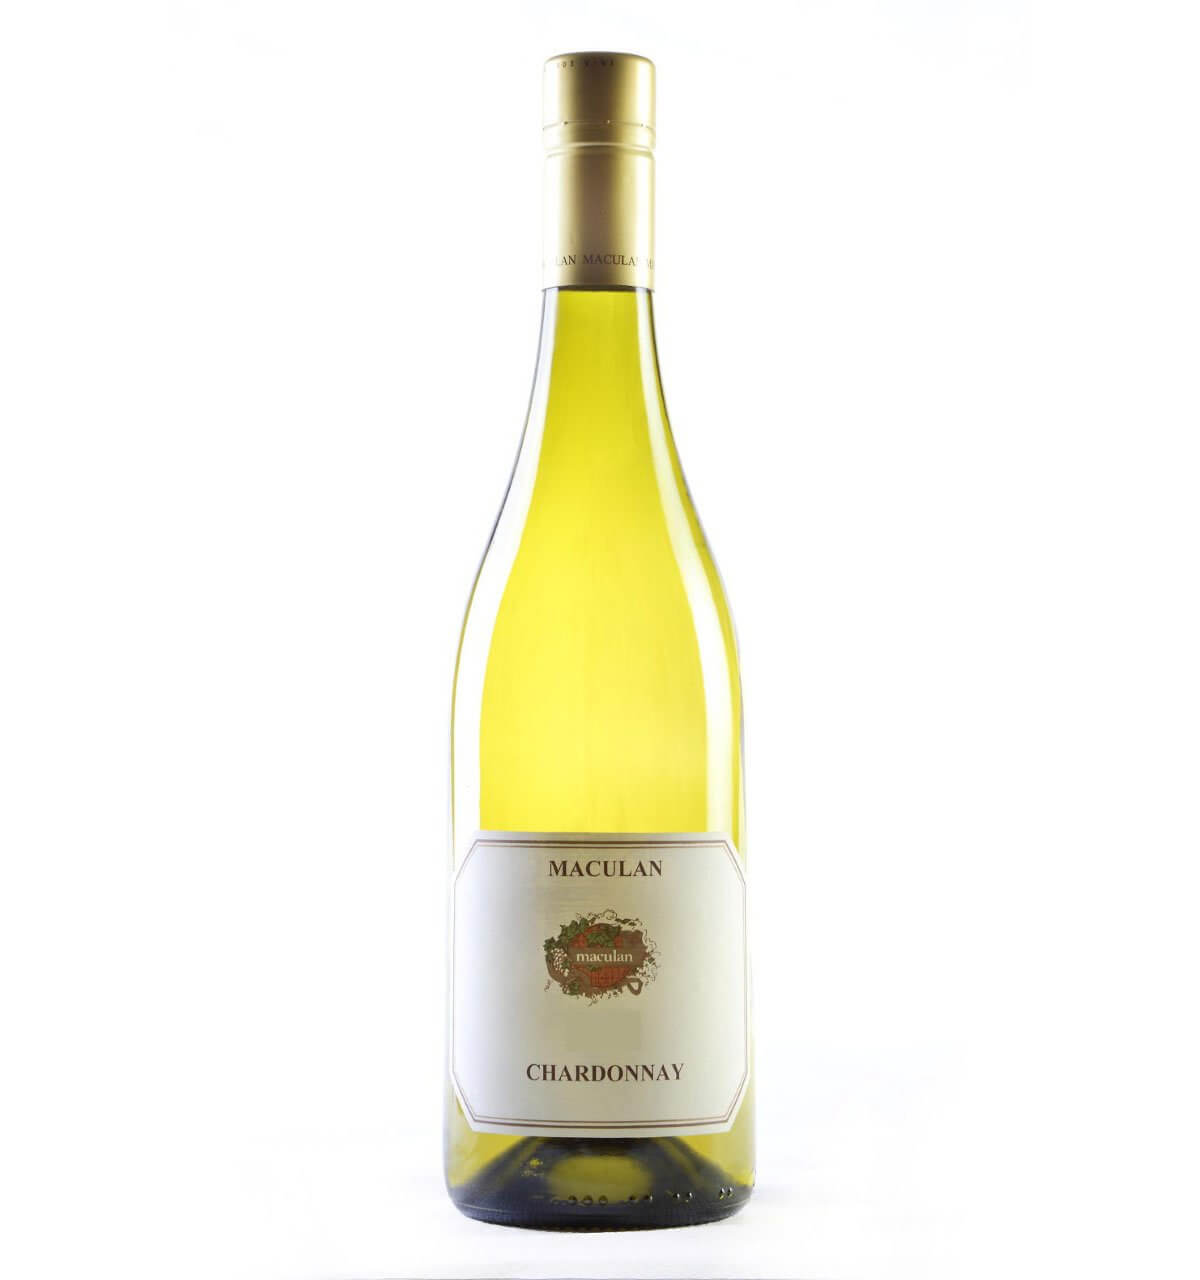 Masculan Chardonnay 2017, bottle on white back